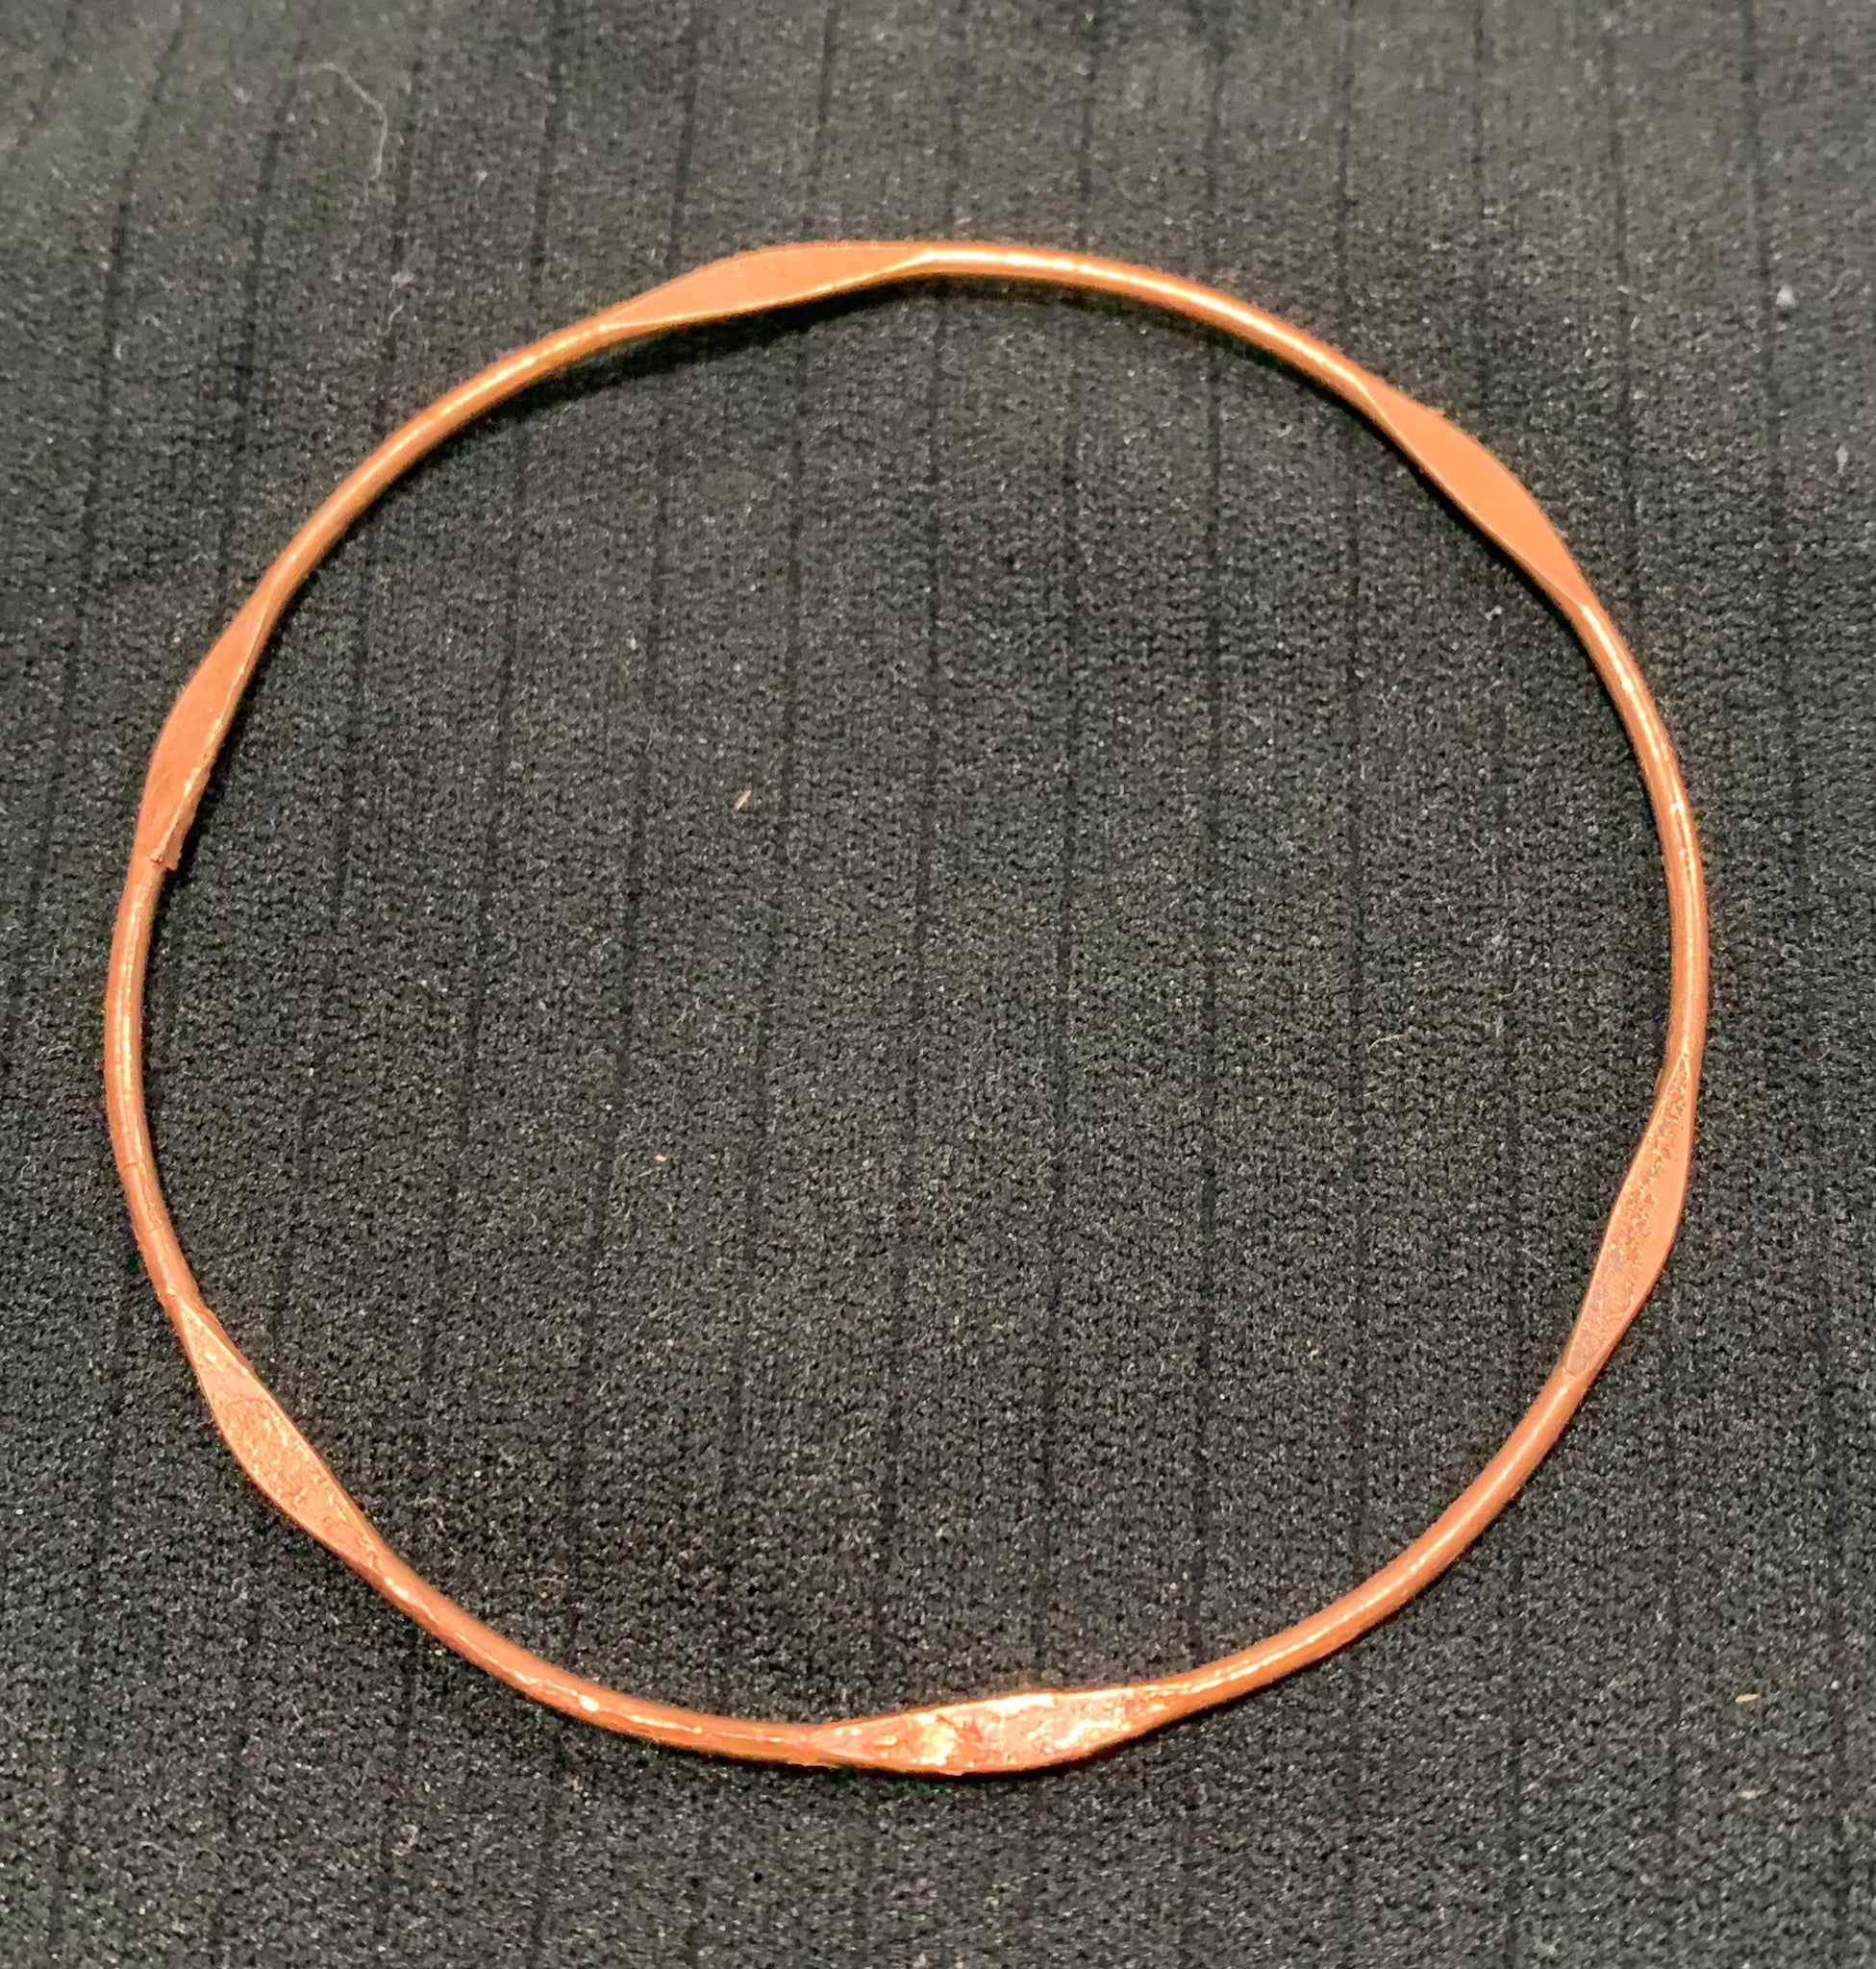 Electroformed Copper Bangle by Sarah Bernzott